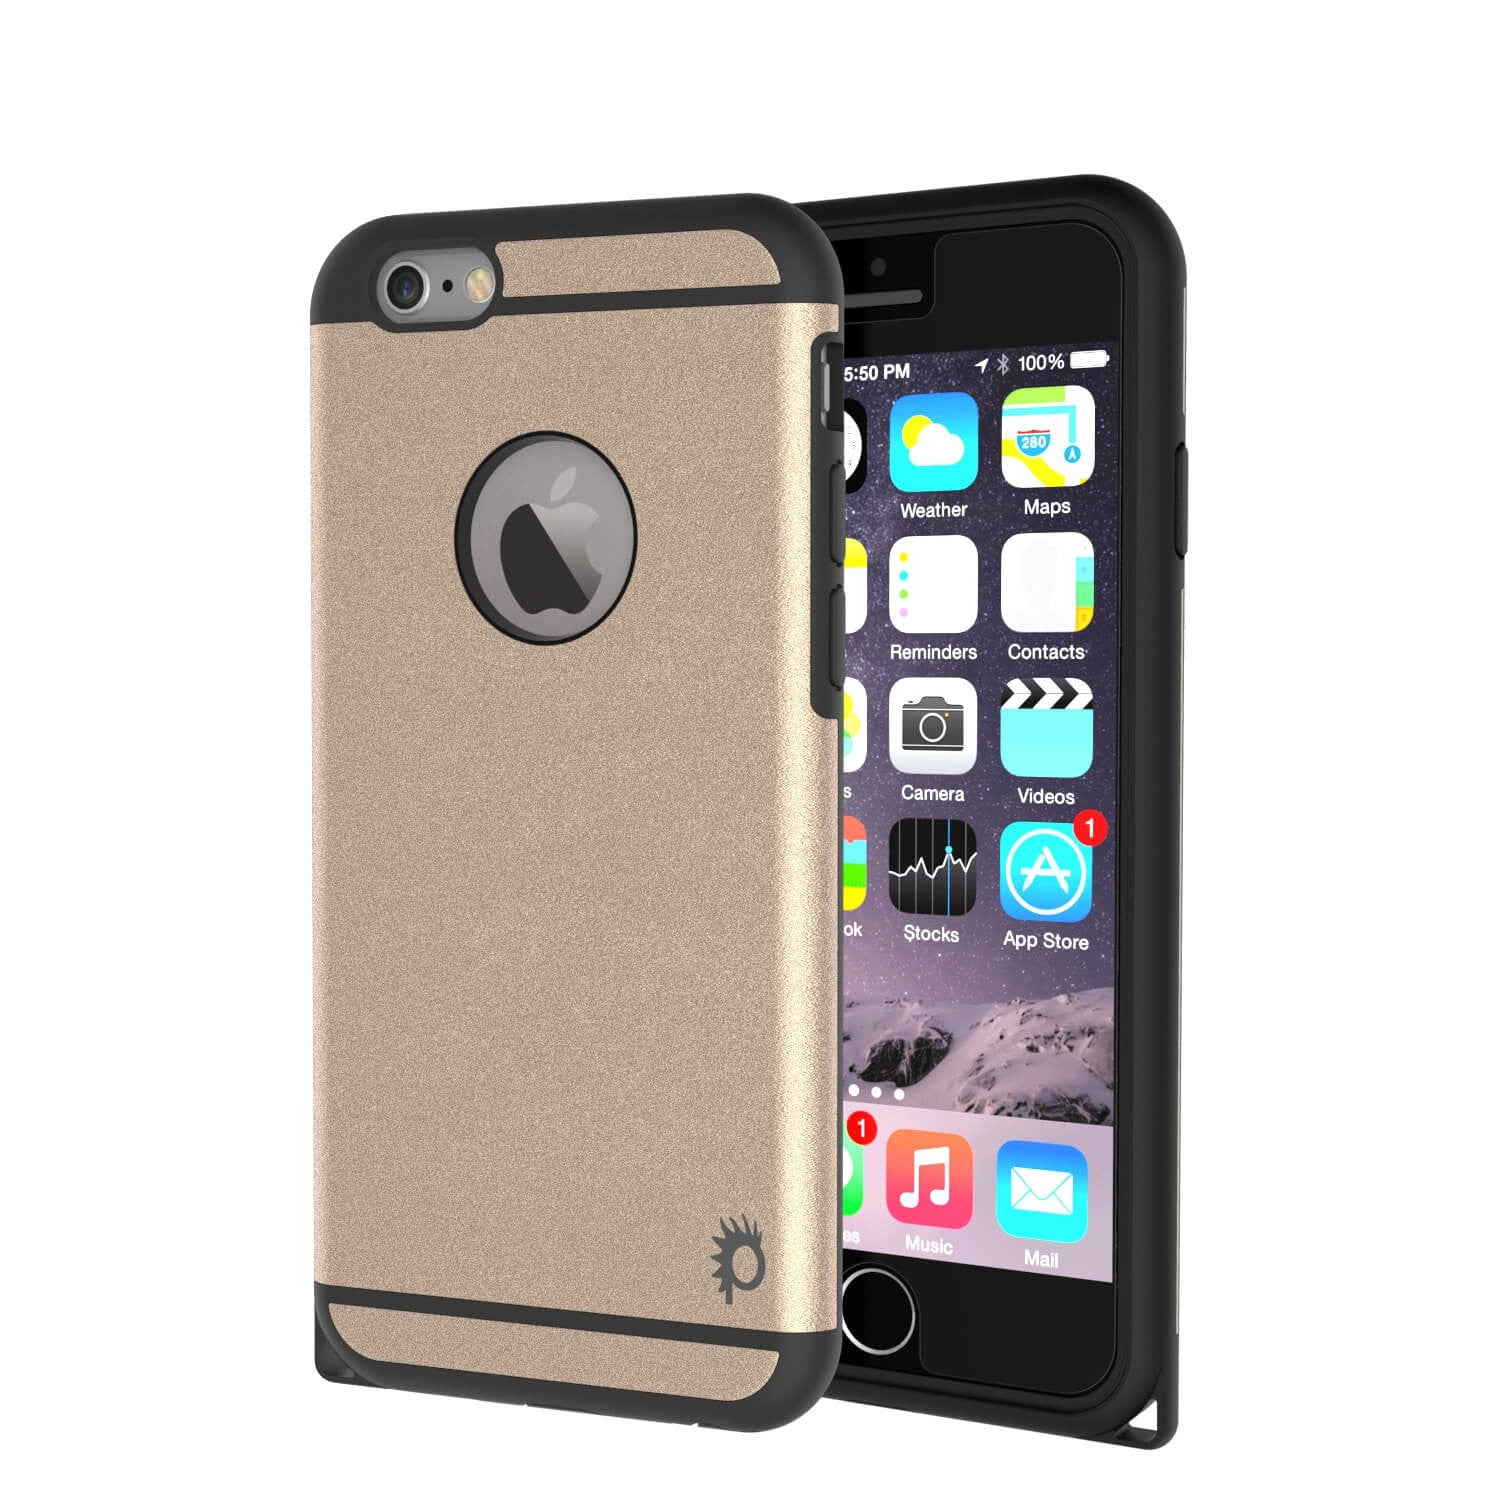 iPhone 6s Plus/6 Plus  Case PunkCase Galactic Gold Slim w/ Tempered Glass | Lifetime Warranty